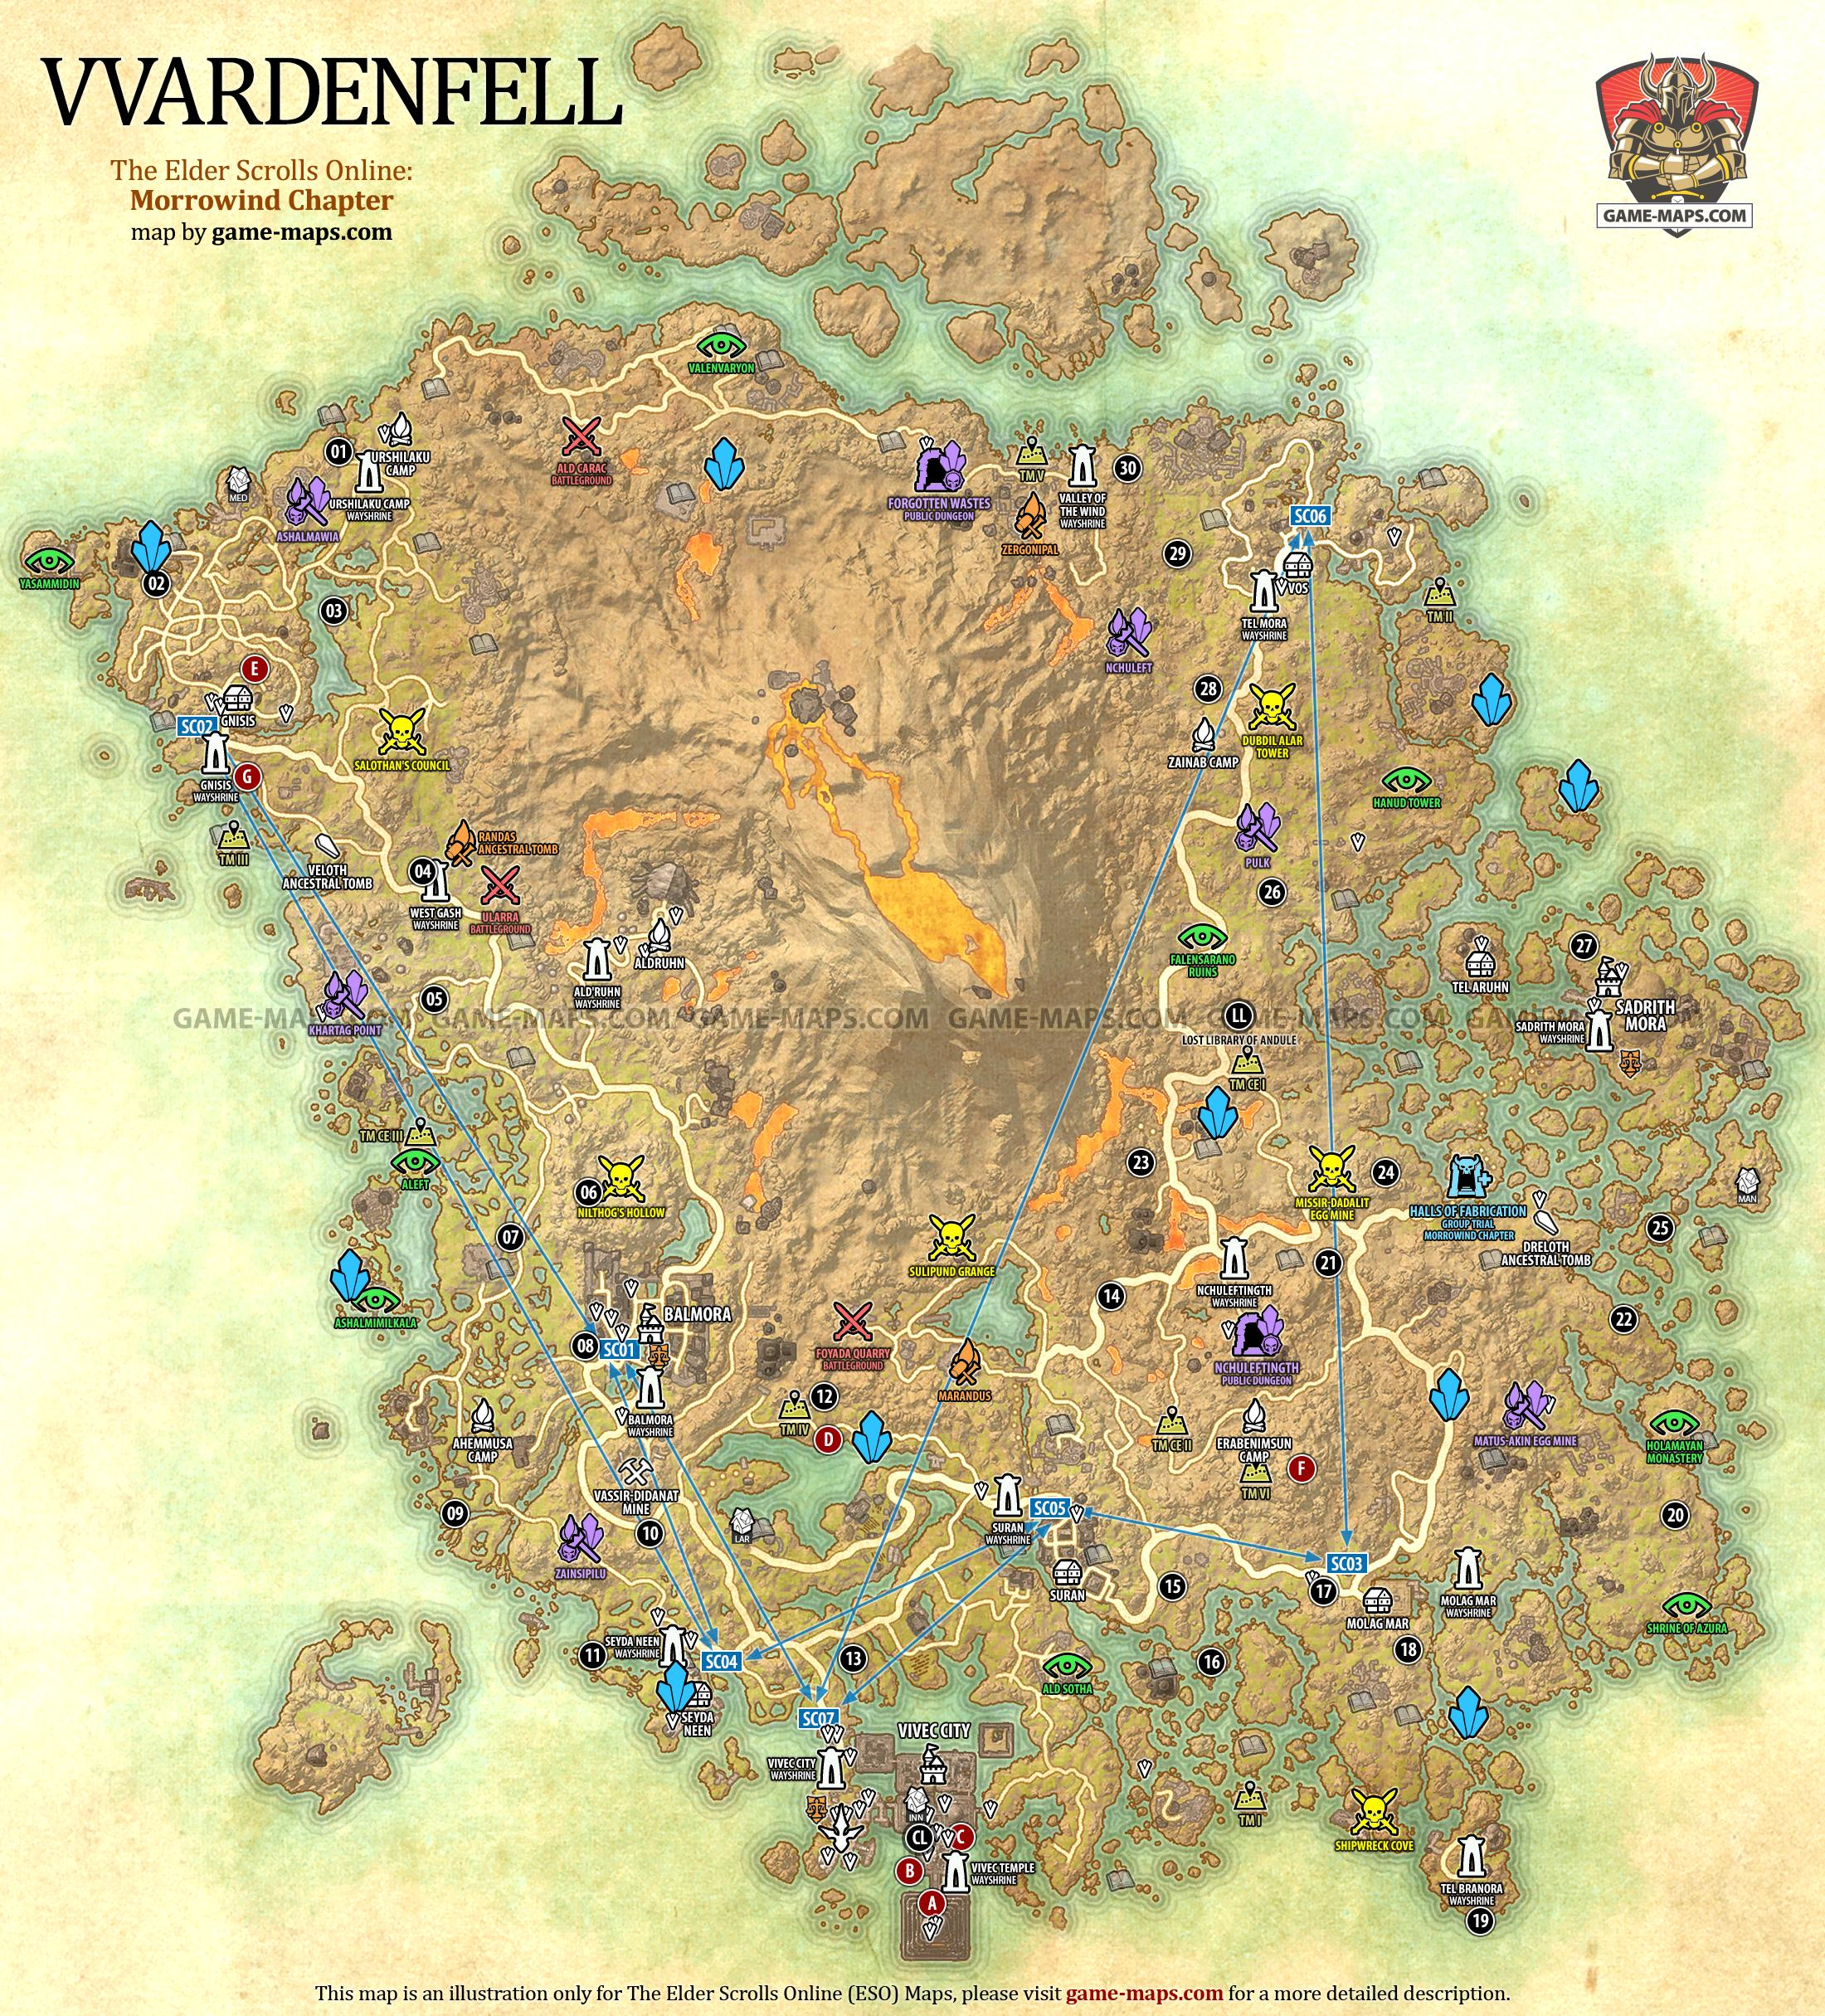 eso ce treasure maps with 450447 on Rivenspire Treasure Maps moreover Eso Glenumbra Skyshards Locations Guide furthermore 450447 in addition Skyrim in addition Bleakrock Isle Treasure Maps.